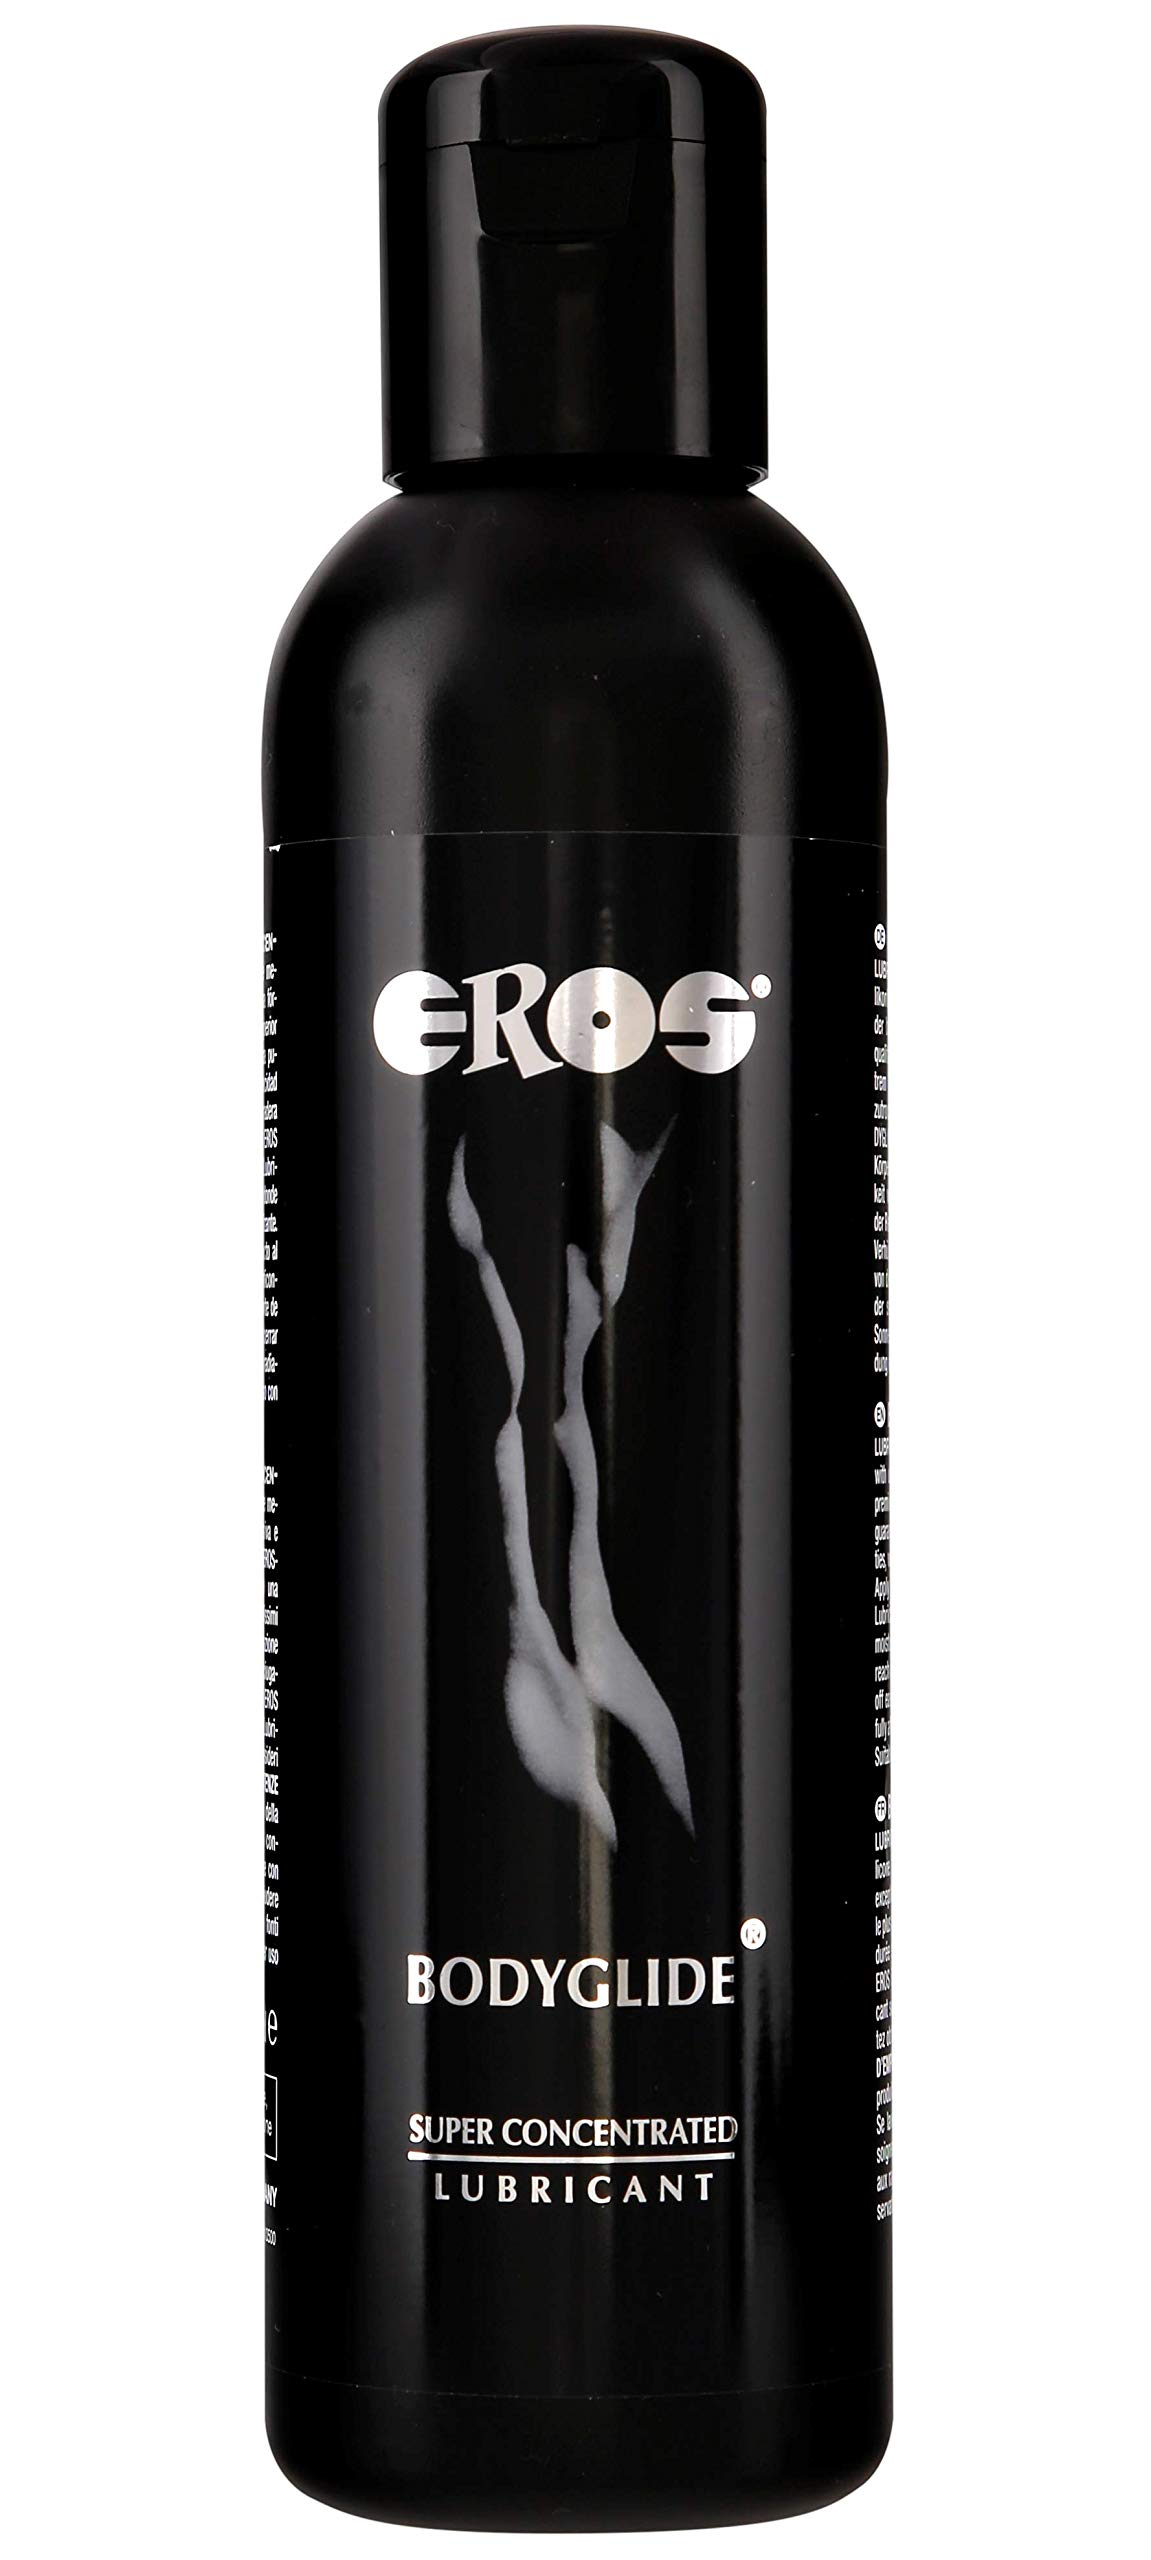 Megasol EROS Bodyglide Super Concentrated Body Gel - Silicon Based Personal Lubricant. Latex Condom Safe, Ultra Long-Lasting Sex Lube Without Parabens or Glycerin ~ 500 mL